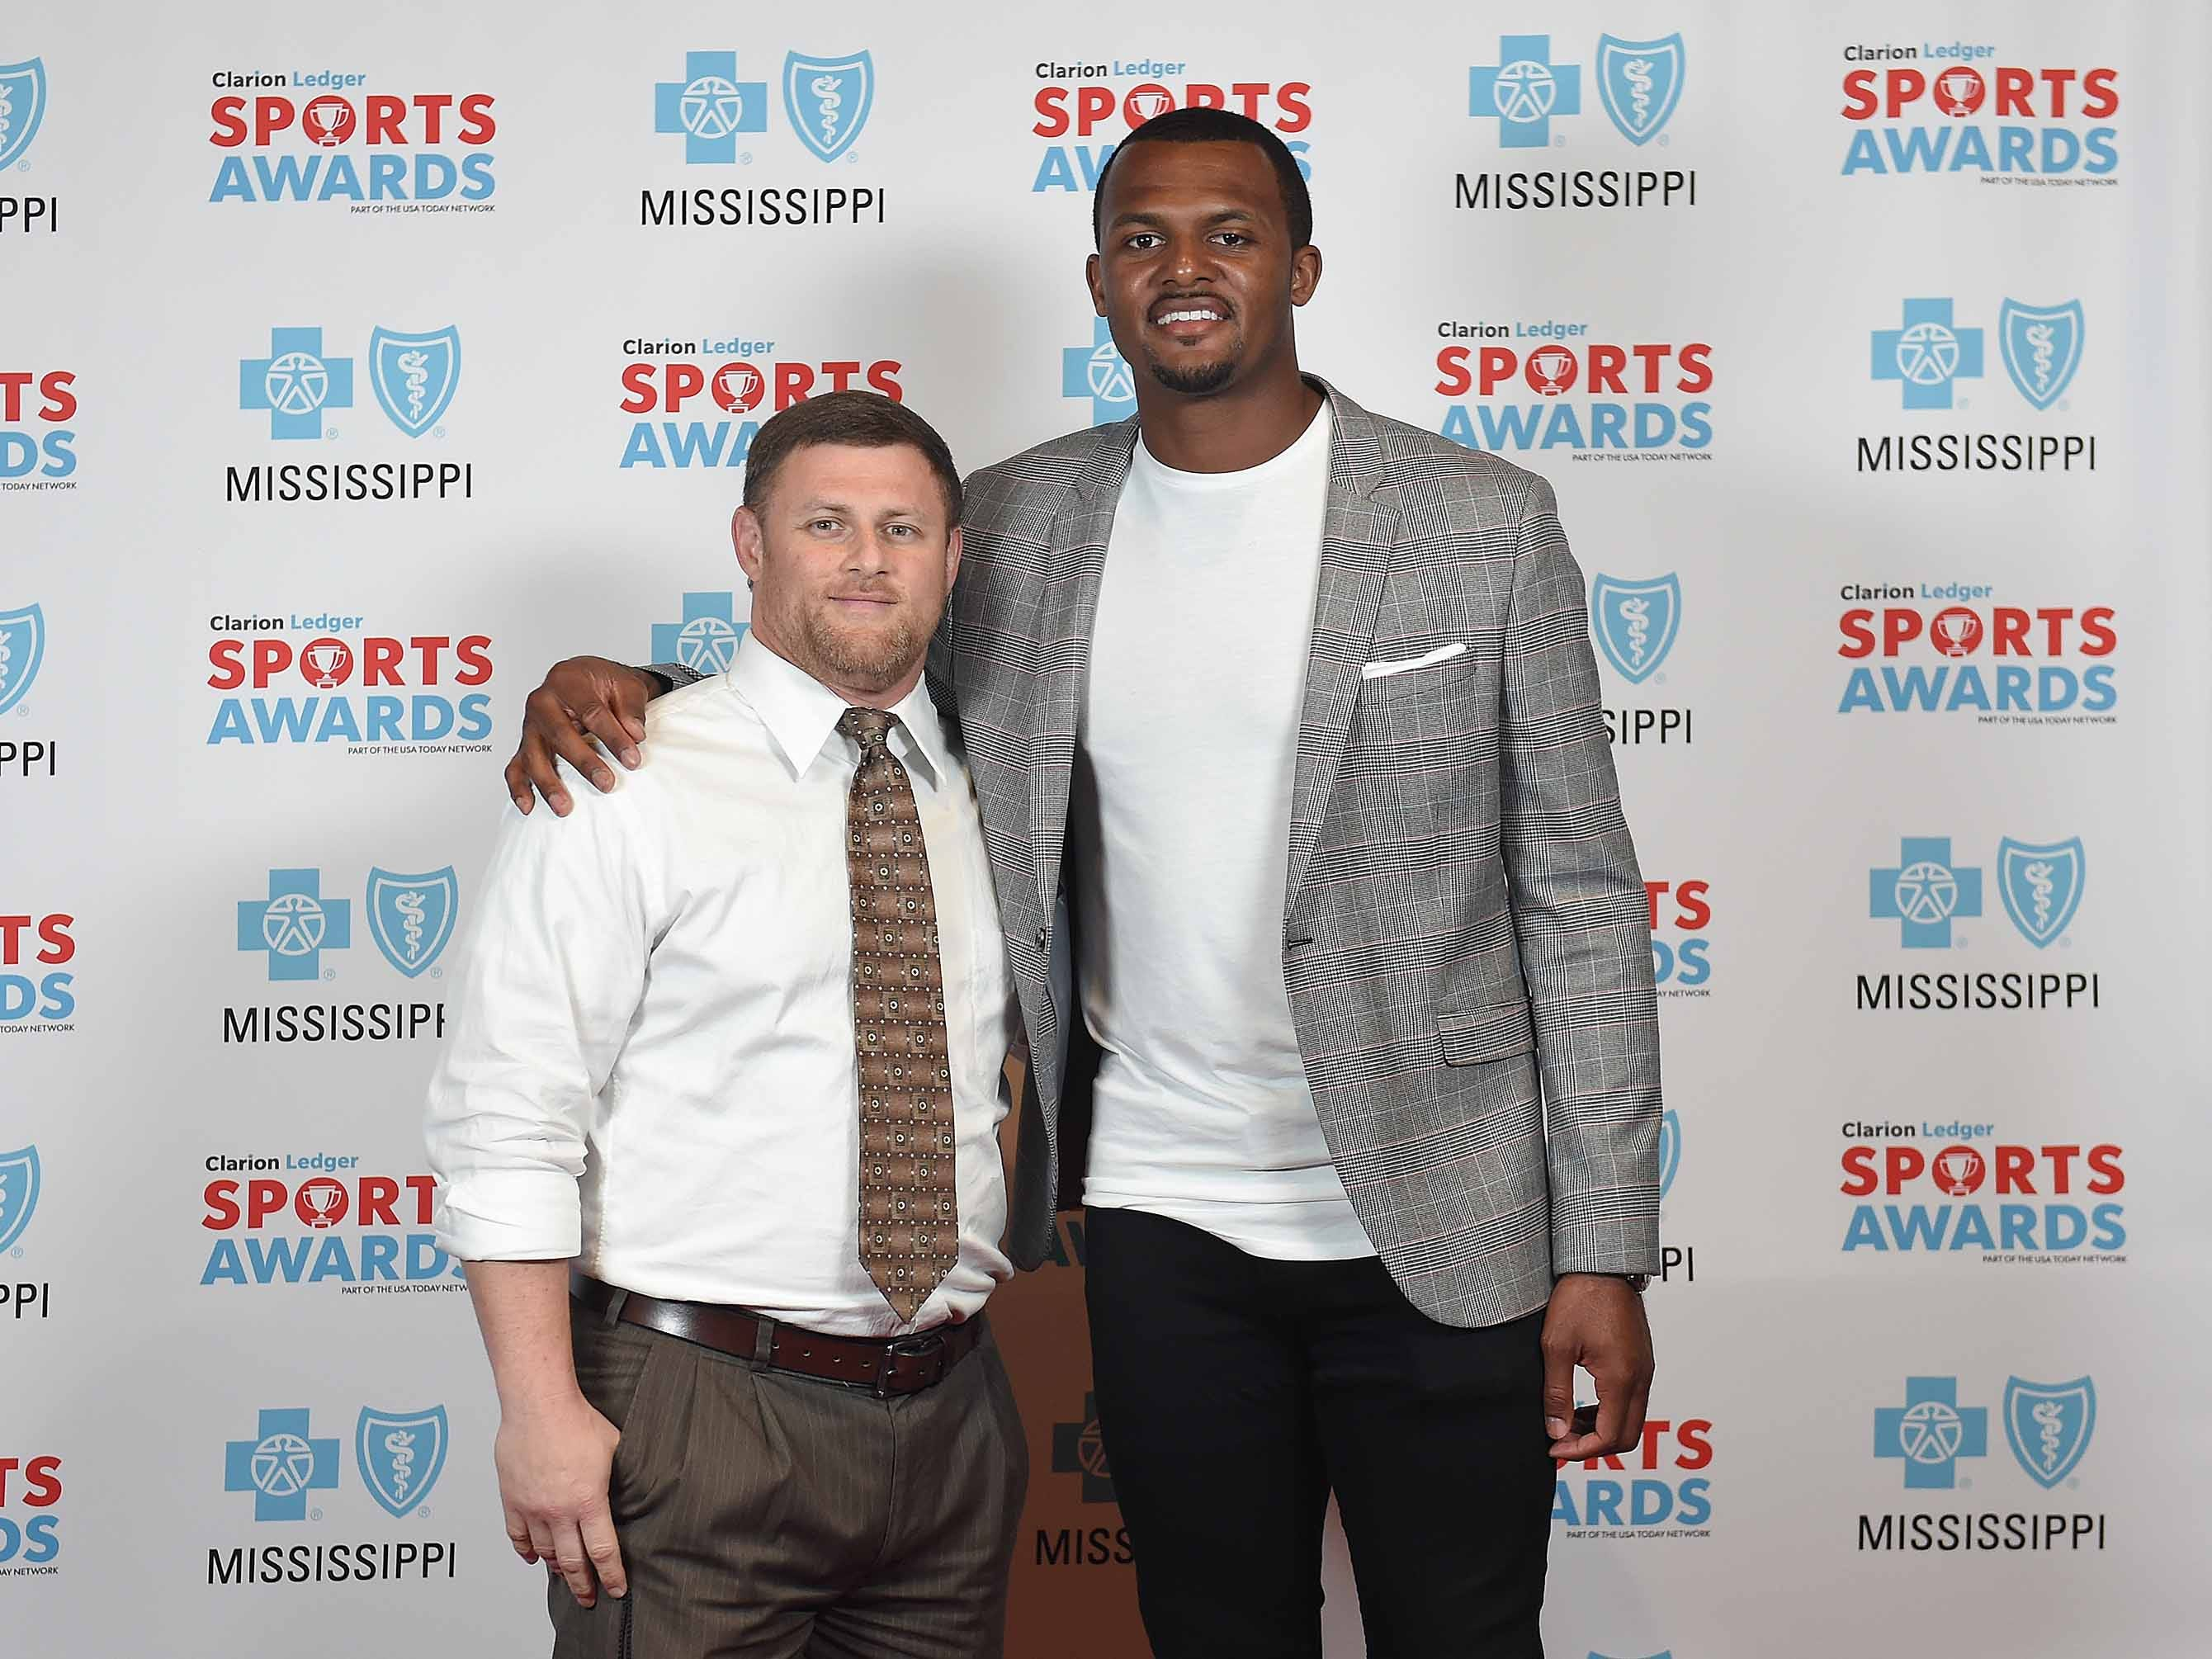 The Clarion Ledger Sports Awards were held on Tuesday, May 14, 2019, at Thalia Mara Hall in downtown Jackson, Miss.